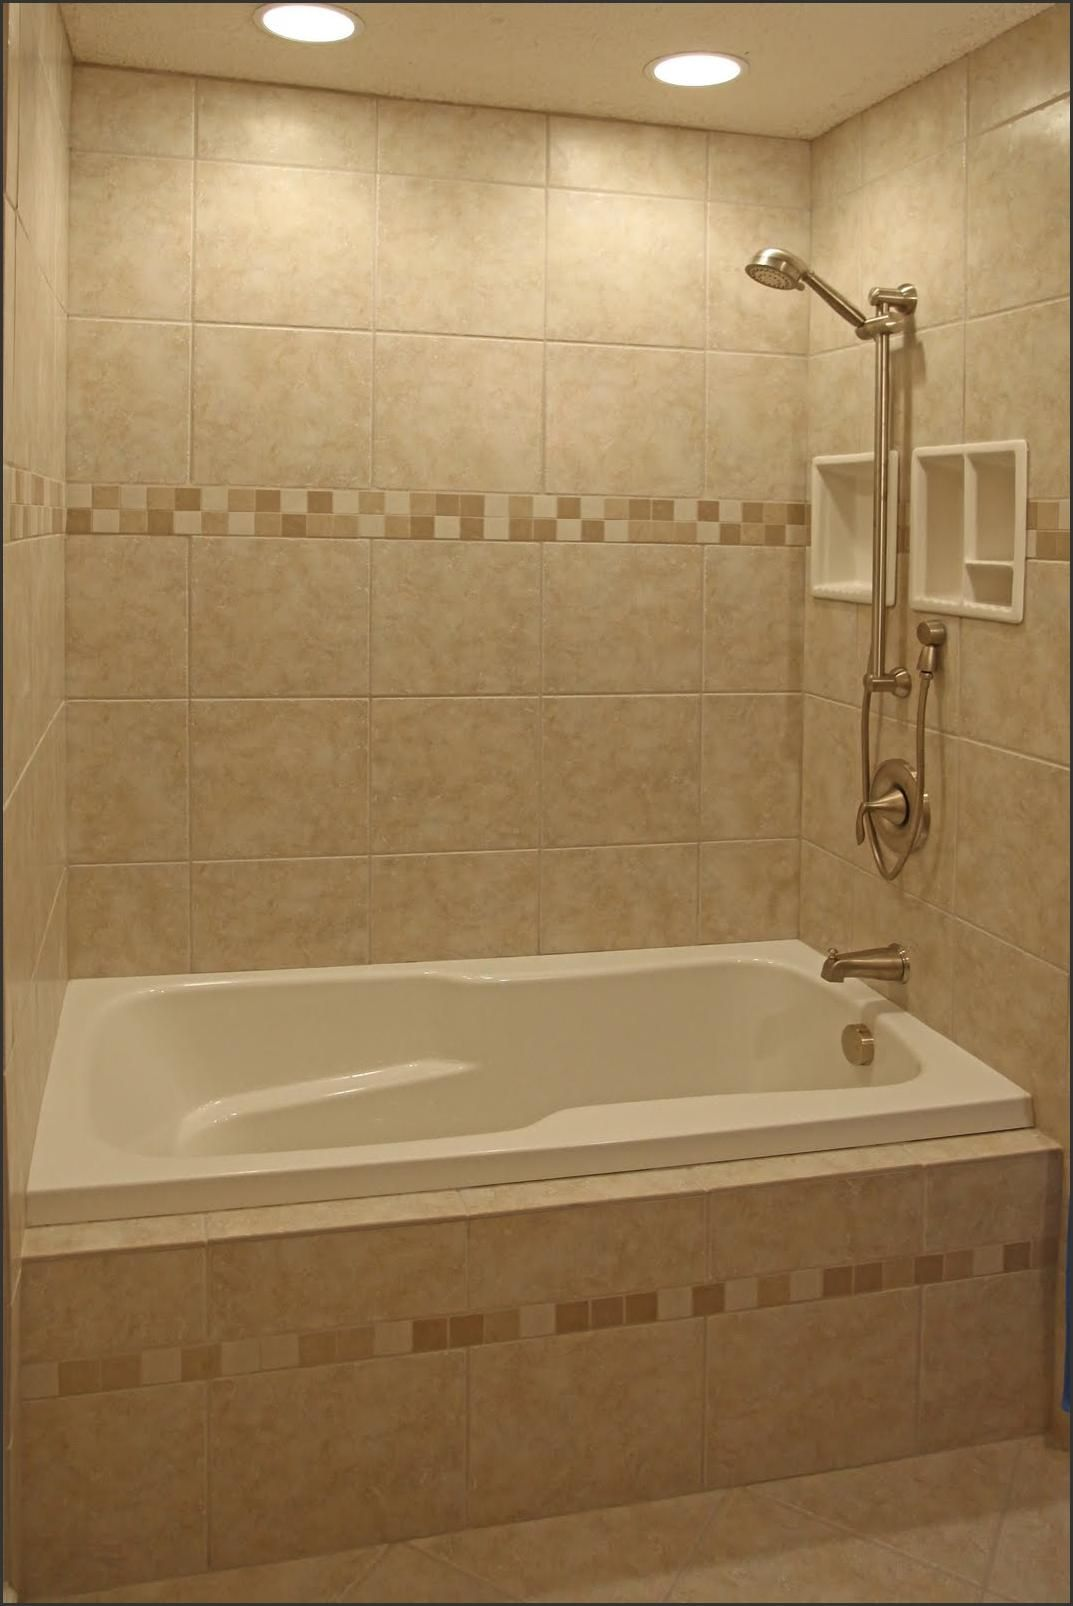 Ceramic Tile Bathroom Shower Pictures - tiling shower floor best ...